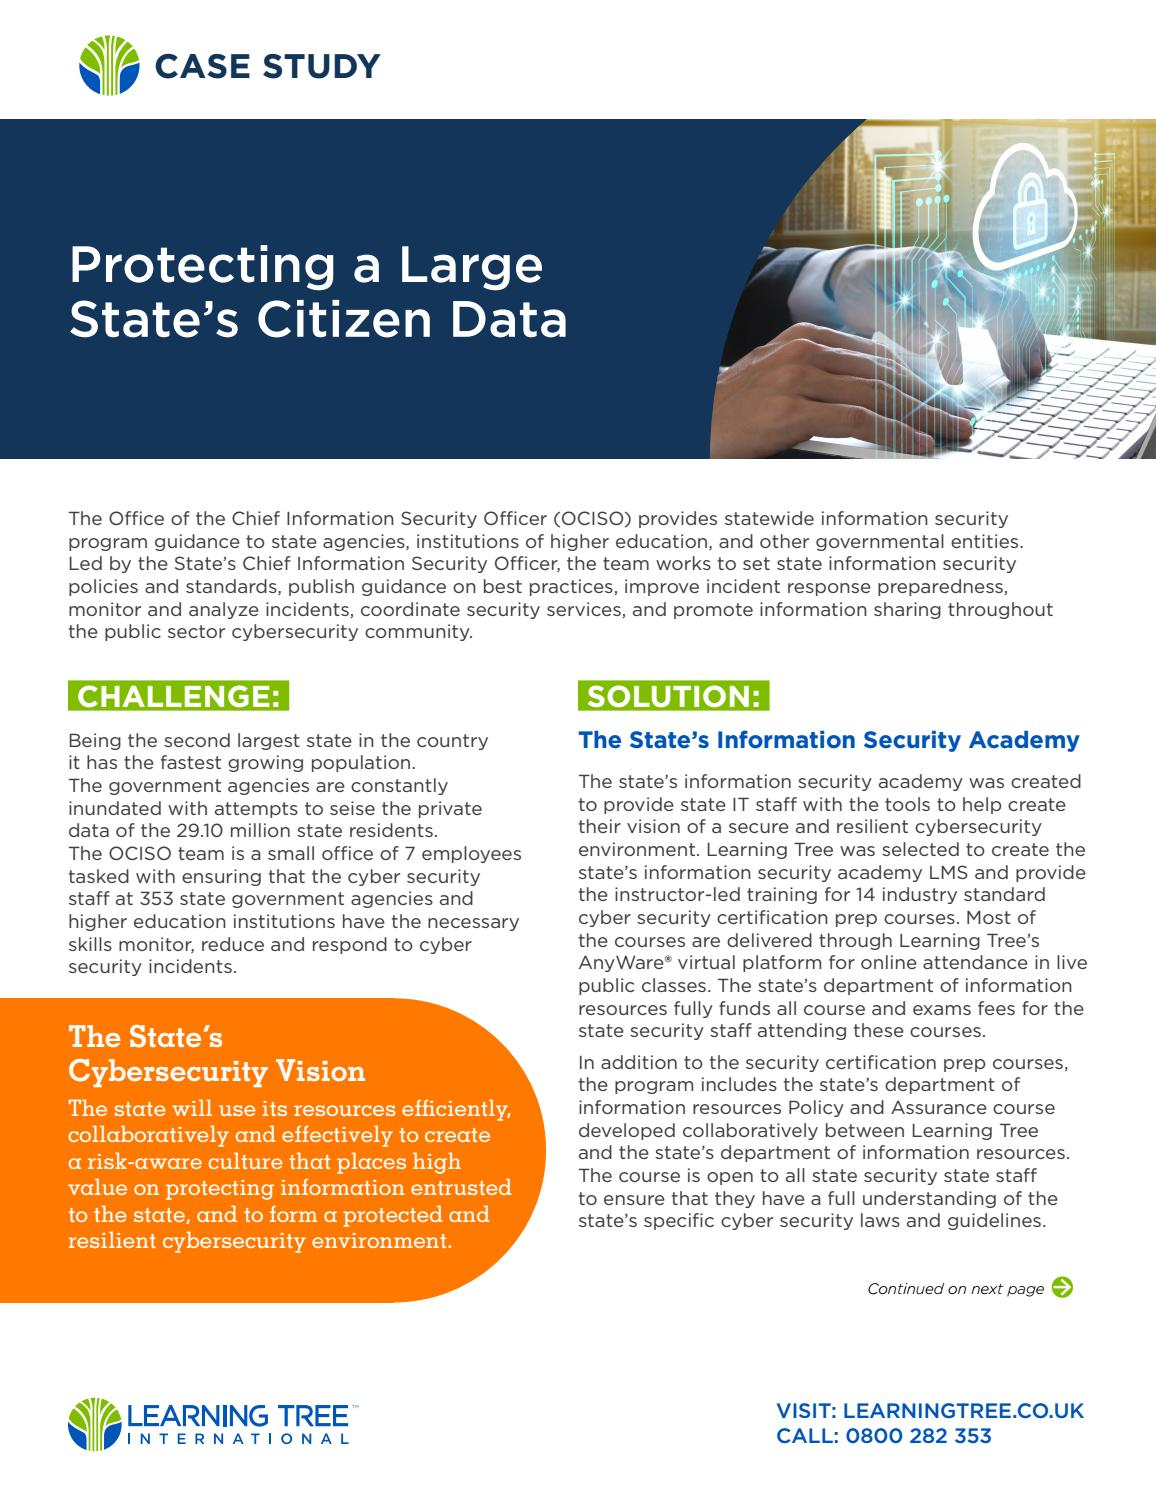 Protecting a Large State's Citizen Data by LearningTree